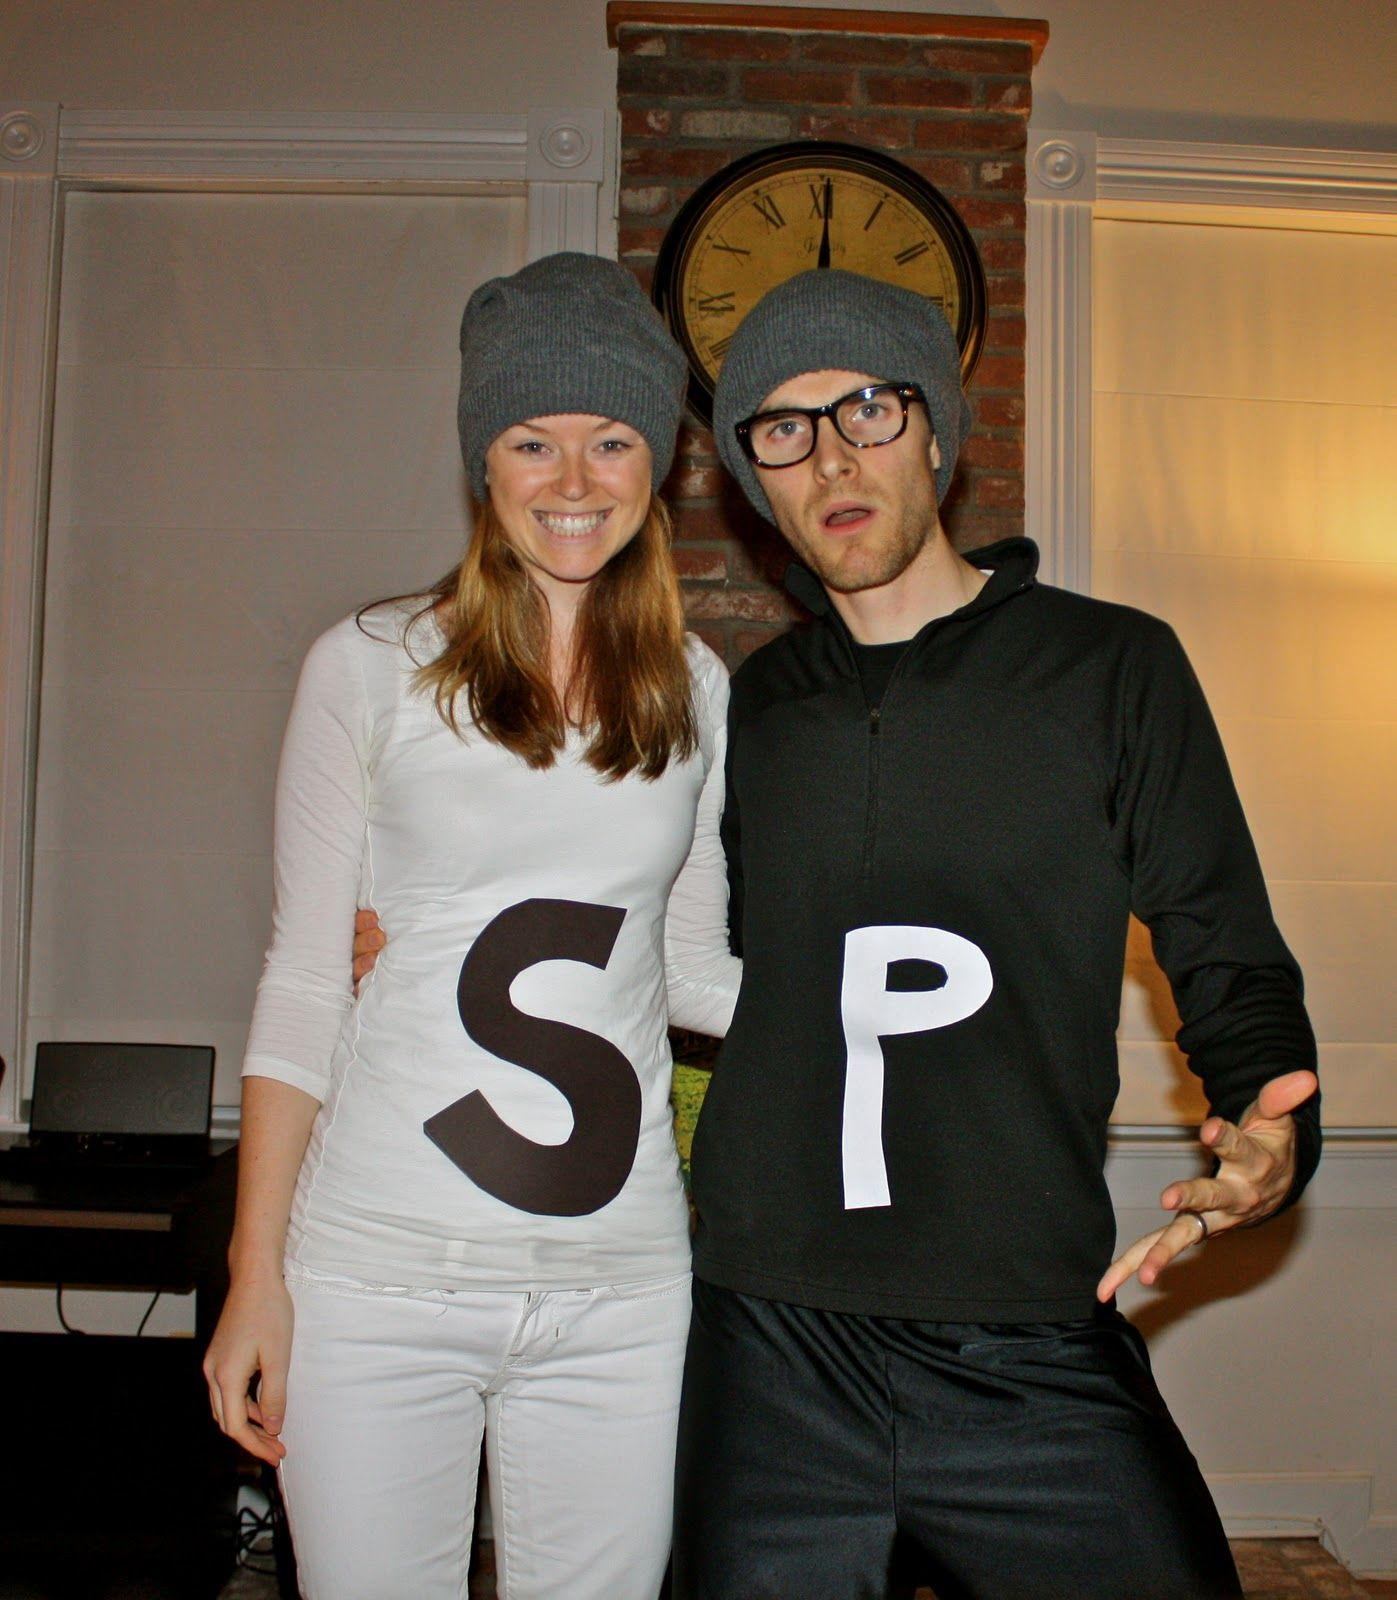 salt and pepper halloween costumes Yahoo! Search Results